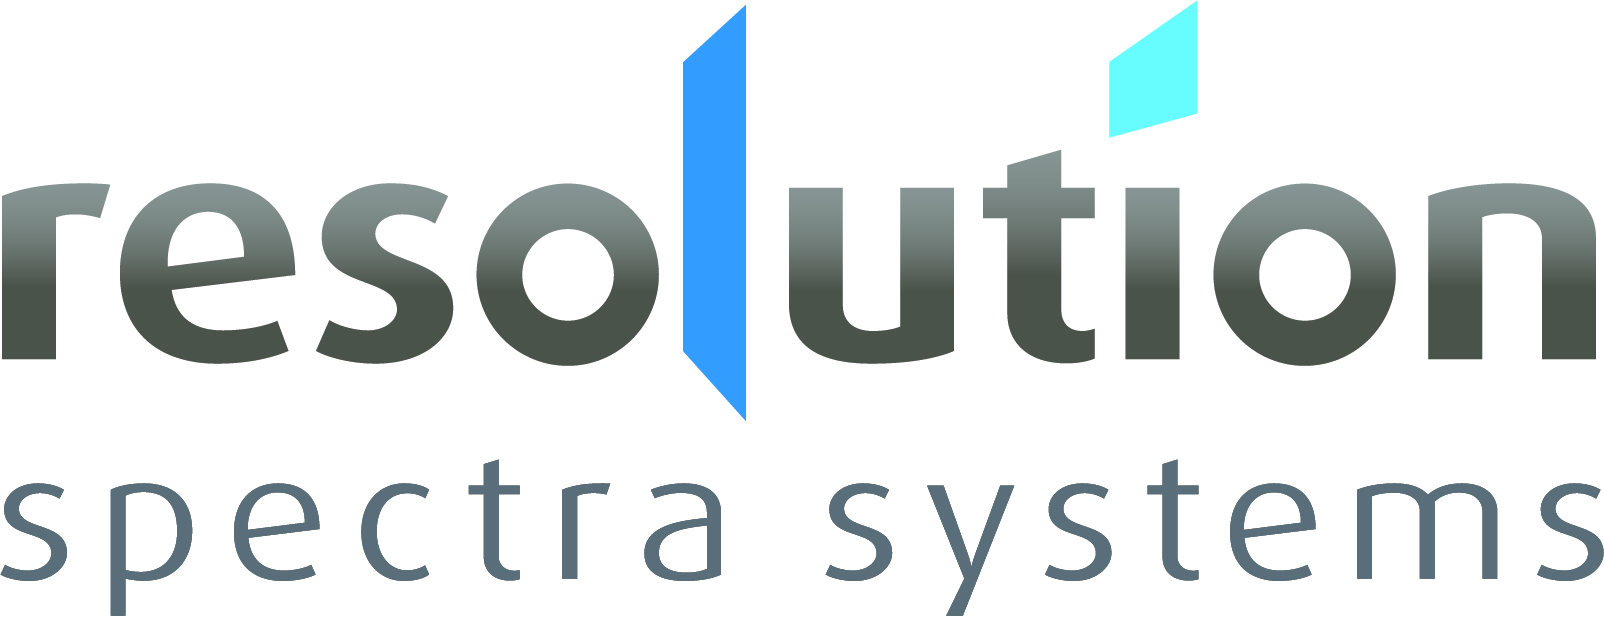 RESOLUTION SPECTRA SYSTEMS